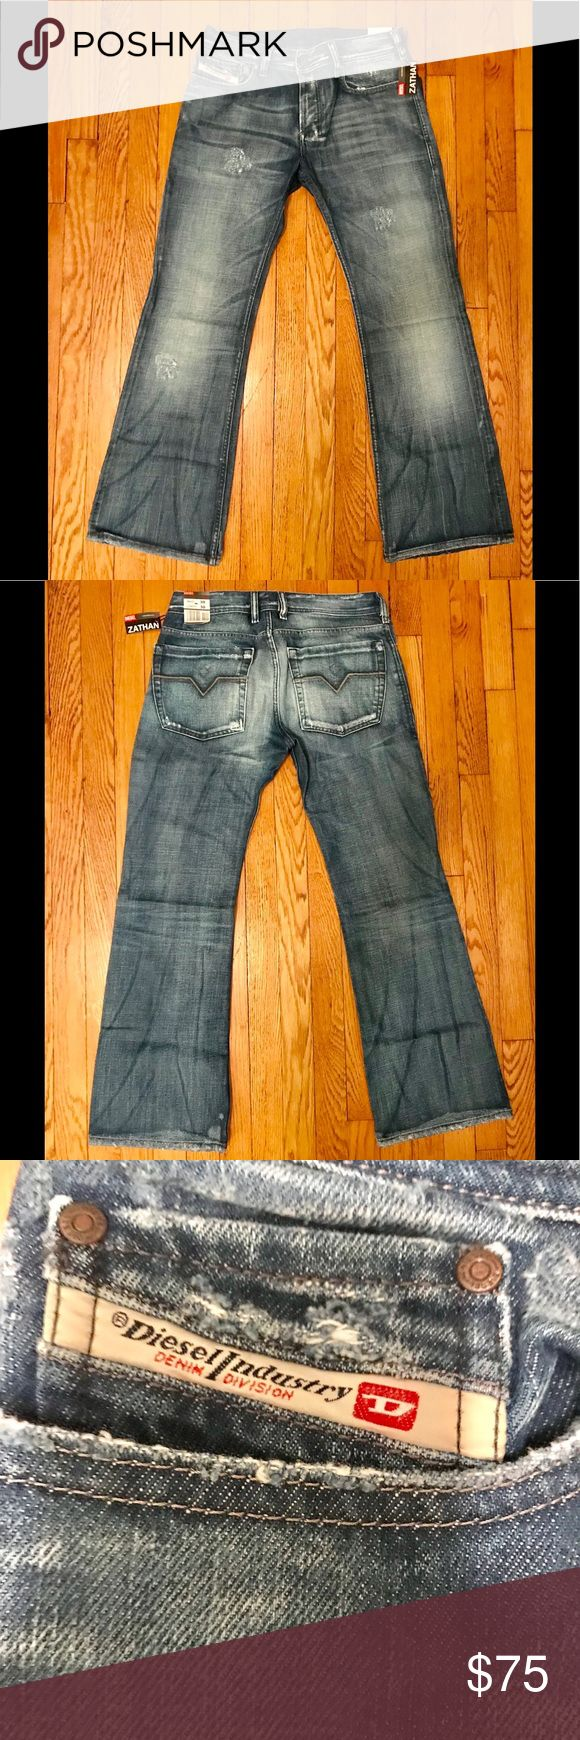 Diesel Zathan jeans Diesel Zathan jeans. Brand new with tags. Blue distressed denim. Low rise boot cut fit. 30 waist 30 length. Diesel Jeans Bootcut